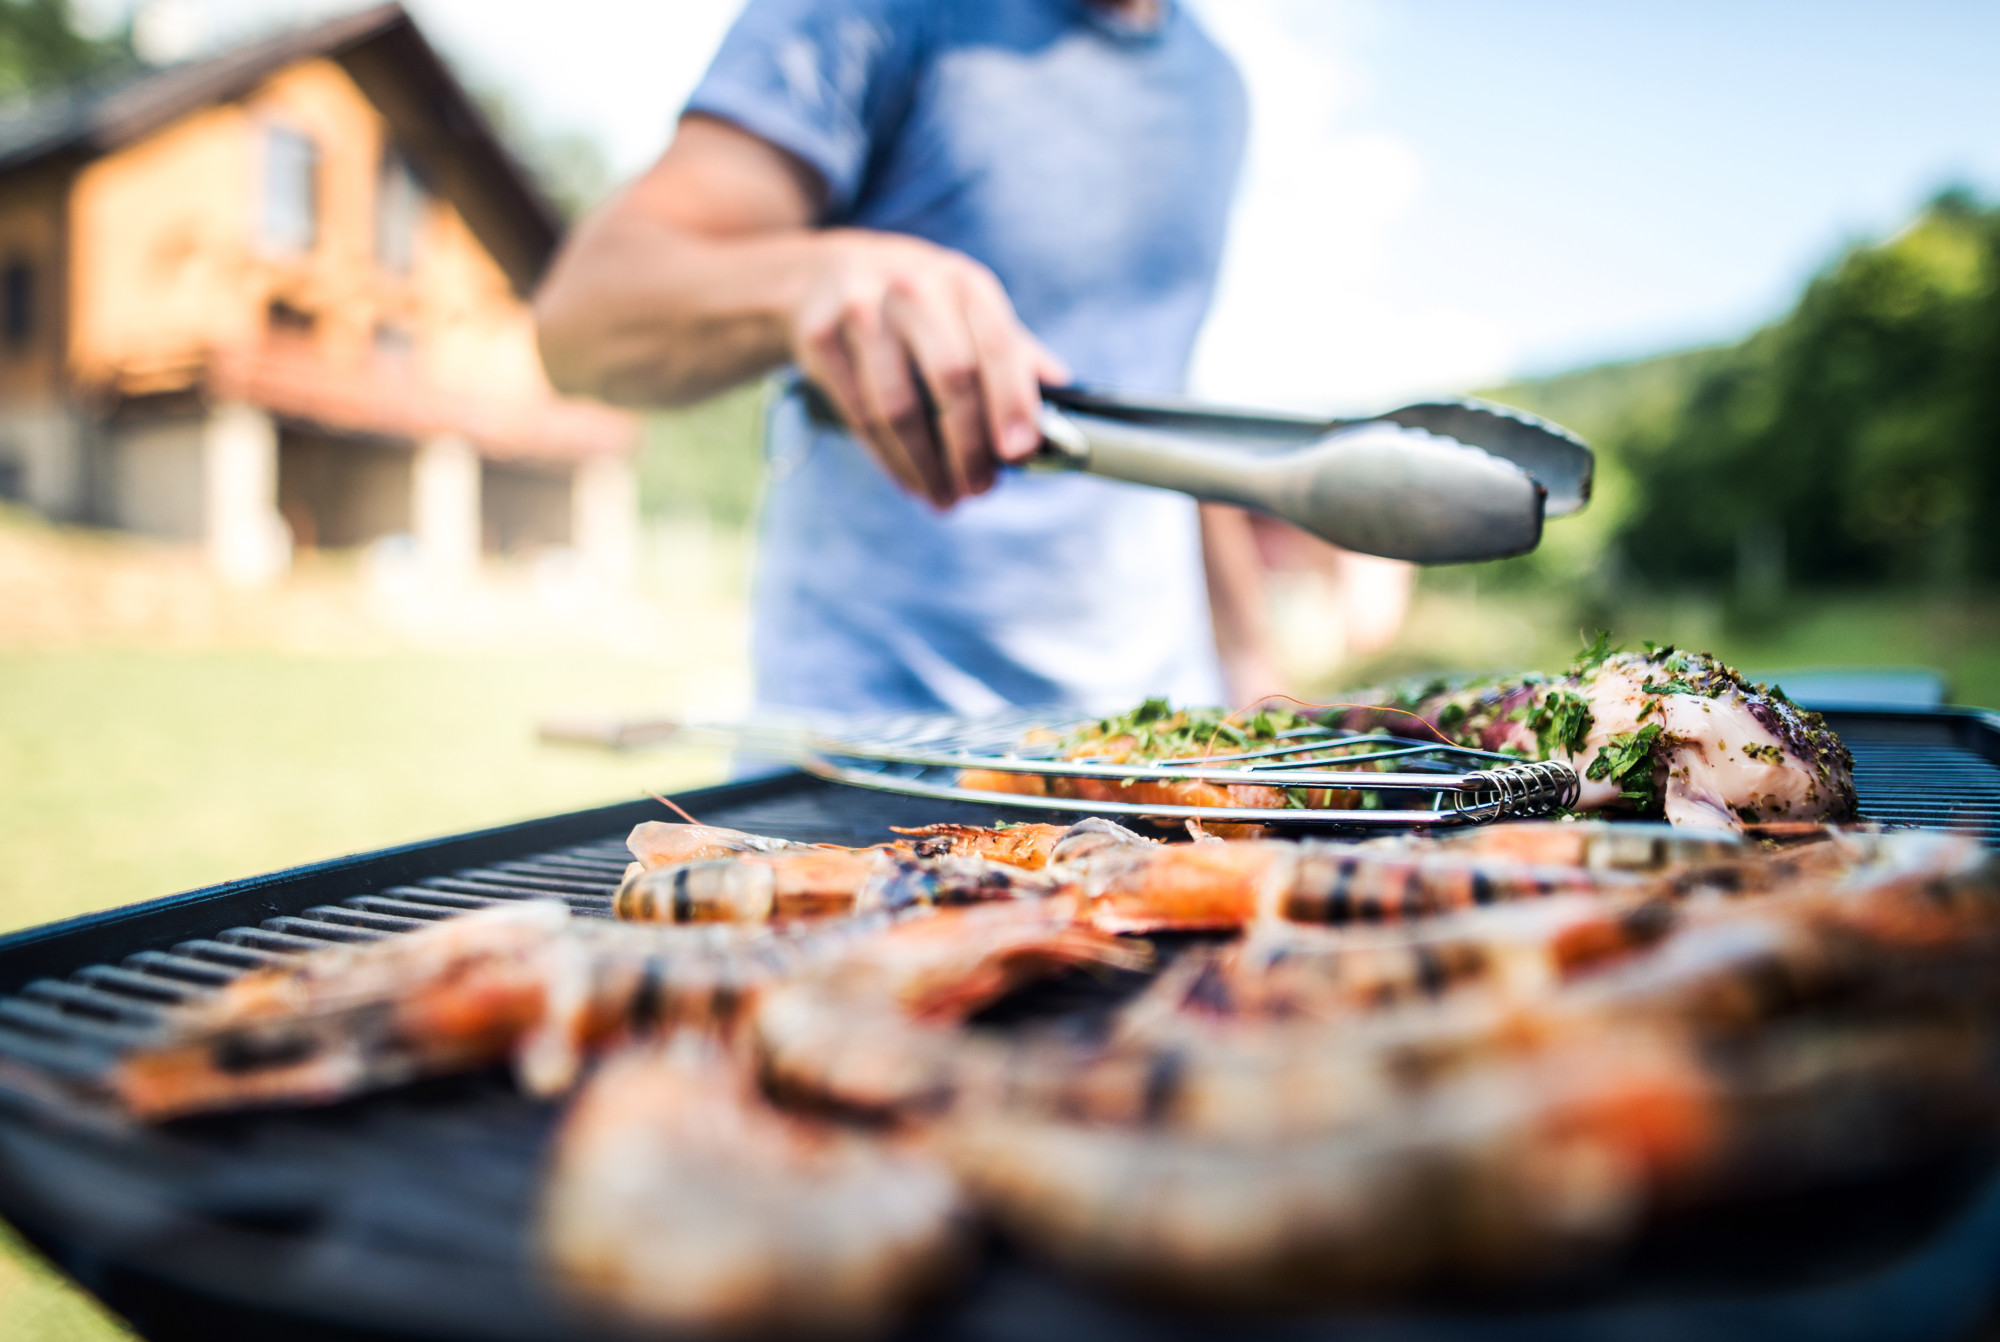 7 Essential Grilling Safety Tips You Must Know Before You Fire Up the Barbecue